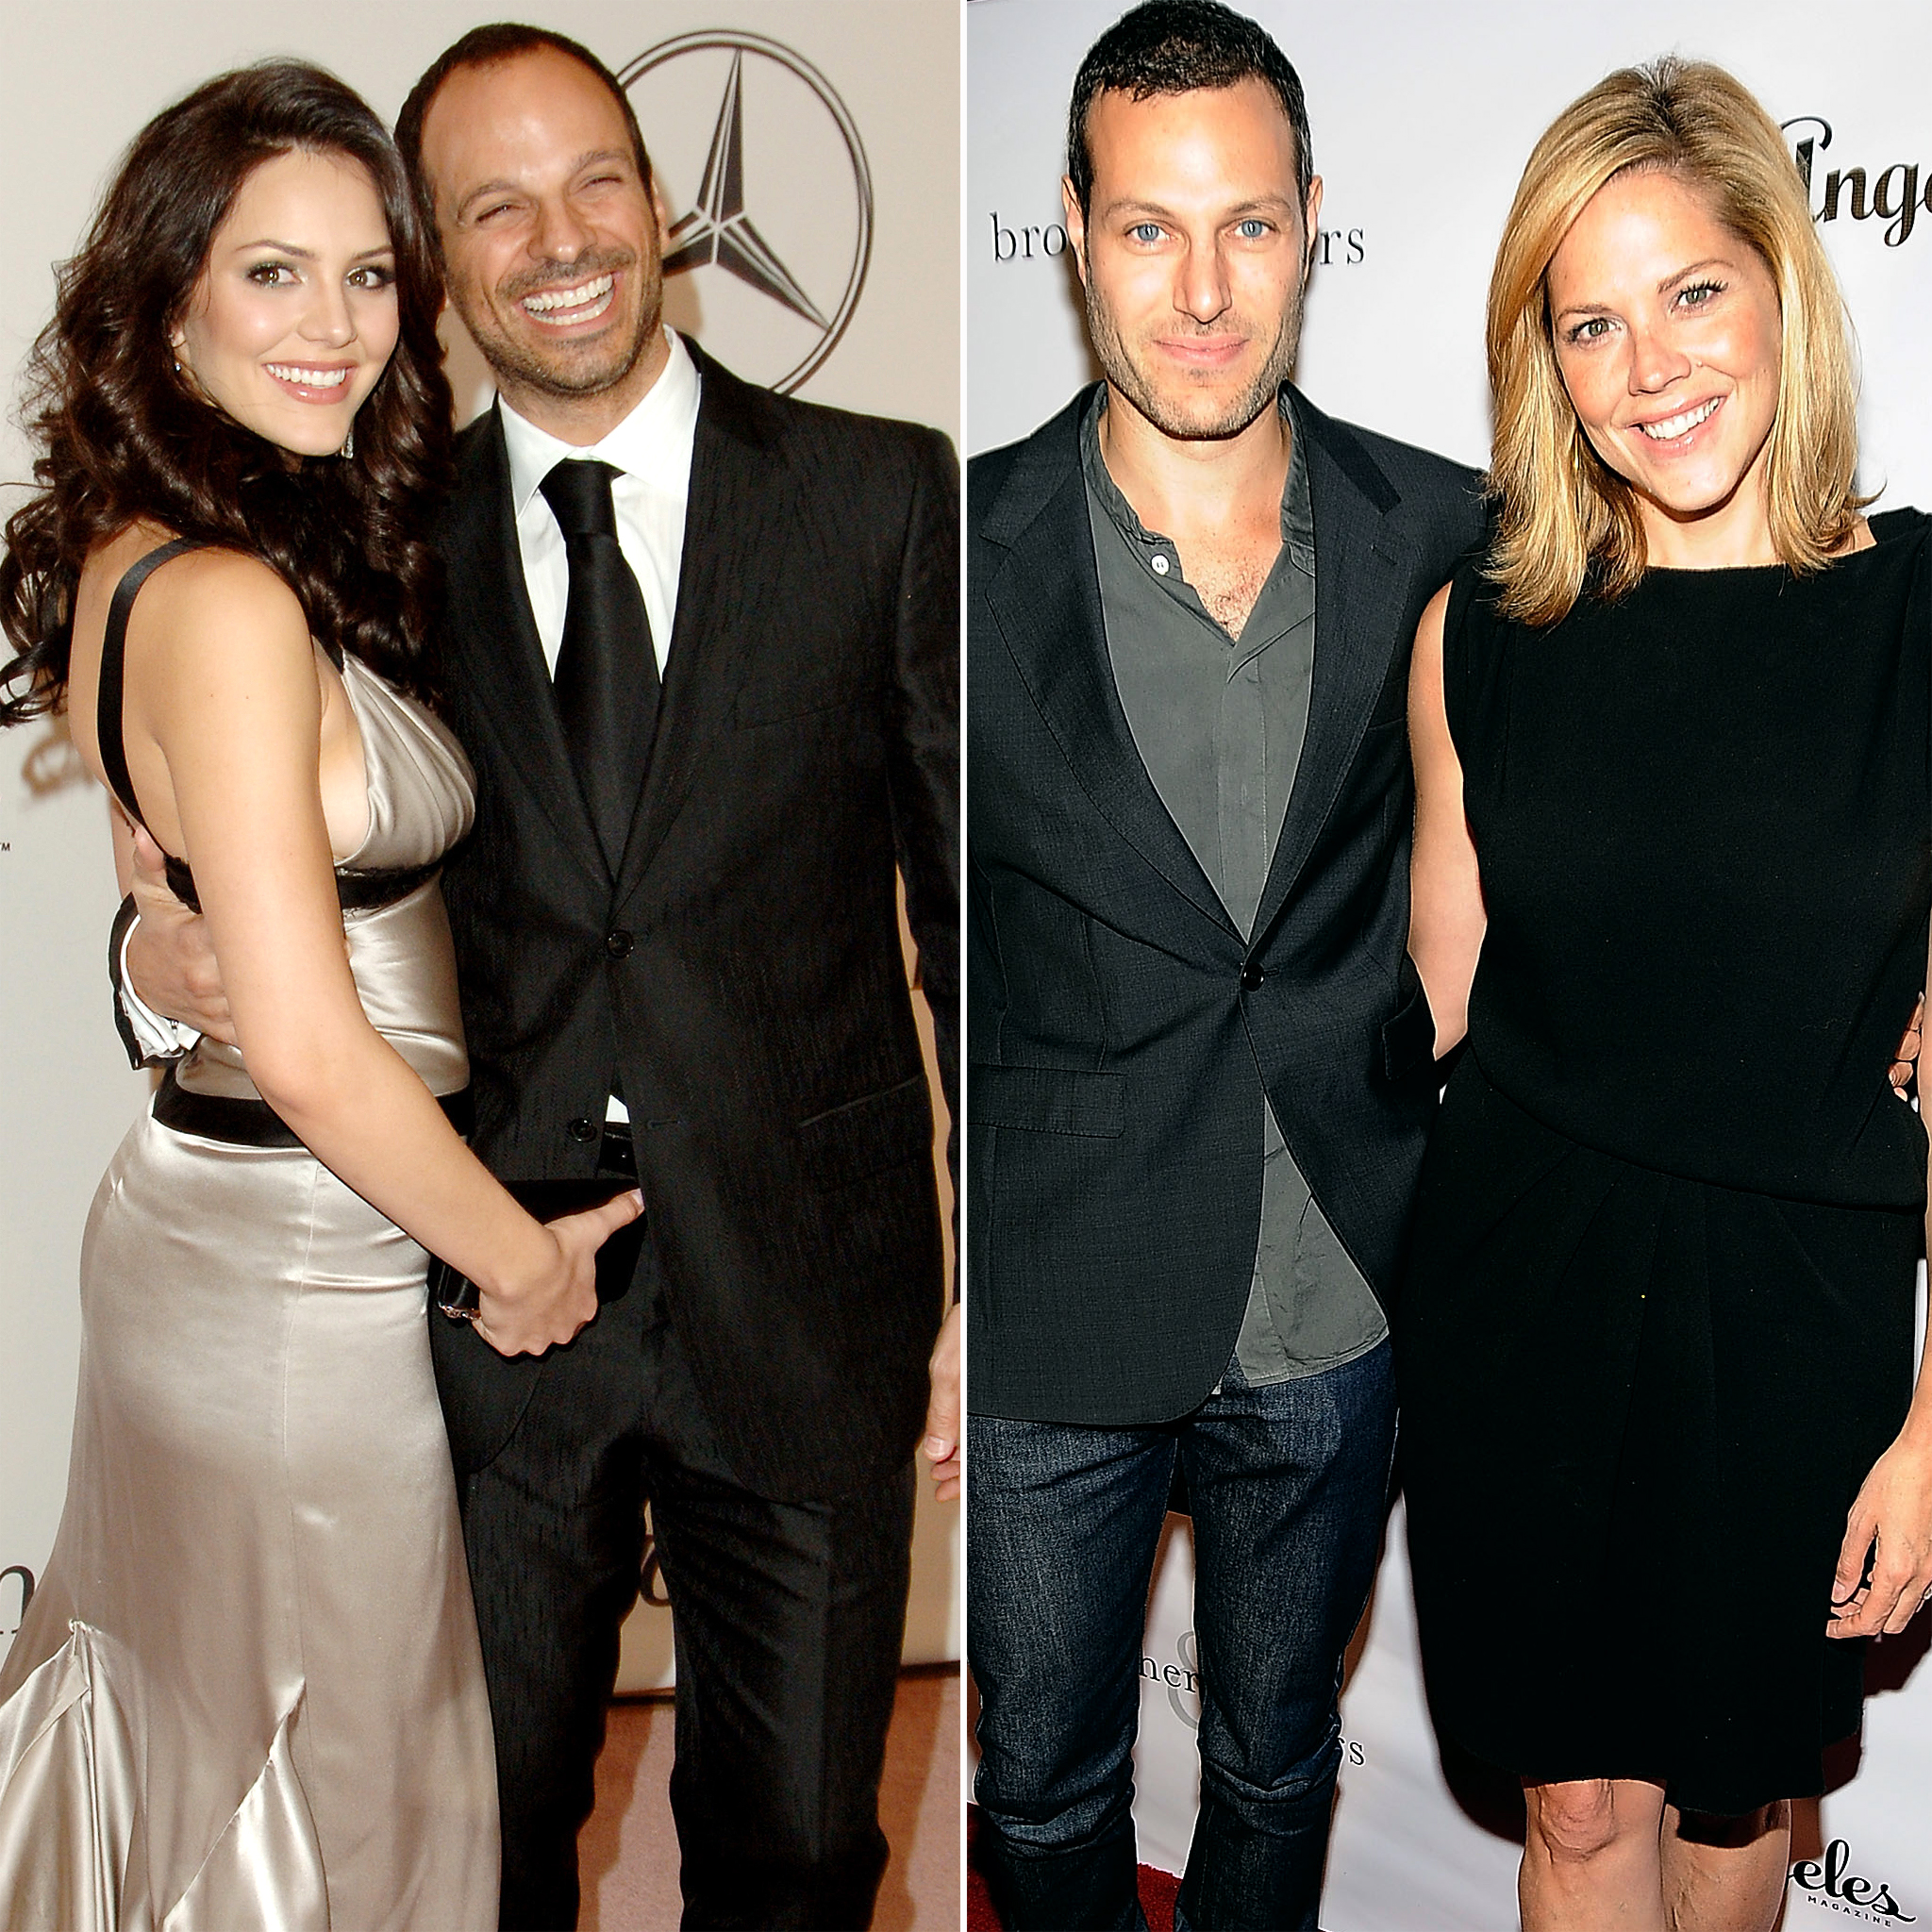 Katharine McPhee with her husband, Nick Cokas, and Michael Morris with his wife, Mary McCormack (Getty Images)